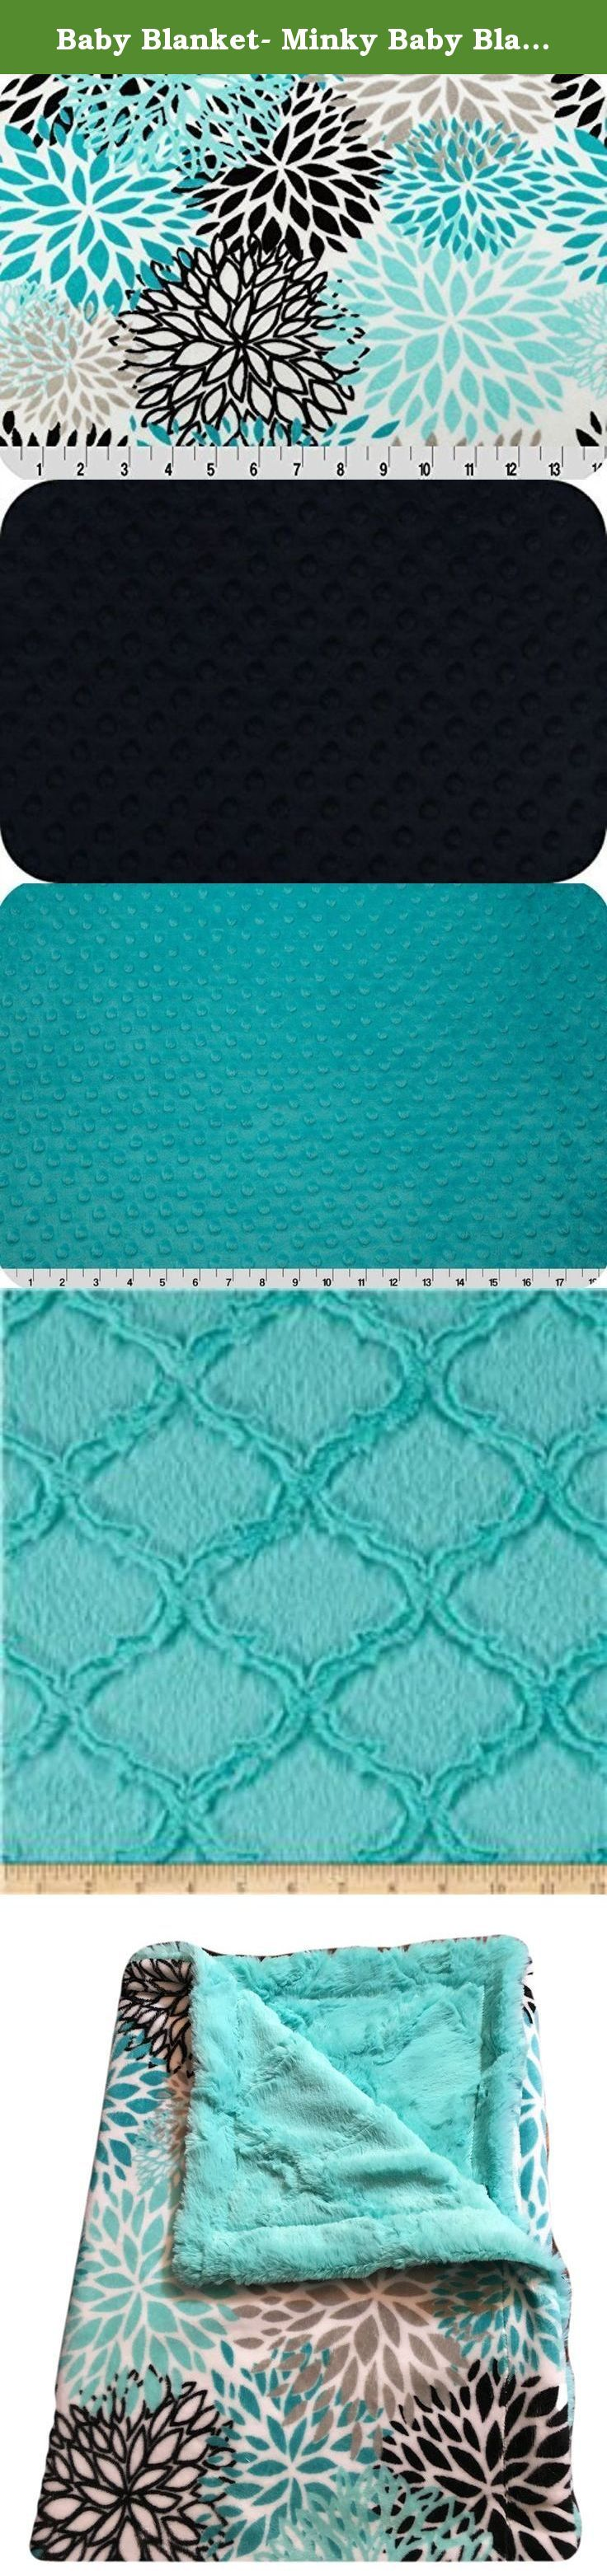 Baby Blanket- Minky Baby Blanket- Teal Blanket, Baby Boy Blanket-Baby Girl Blanket - Stroller Blanket - Car Seat Blanket. Personalized Minky Baby Blanket with a Burst of Teal, Gray, Blue and Black on a snow white background. This is a double side Minky blanket that is so soft and cozy. Will be a wonderful addition to your Baby Boy or Girl Minky Blanket needs The sizing (29 x 36 in) is great for a Stroller or Car Seat blanket, ready to use when your child needs cozy comfort. Good for Tummy...